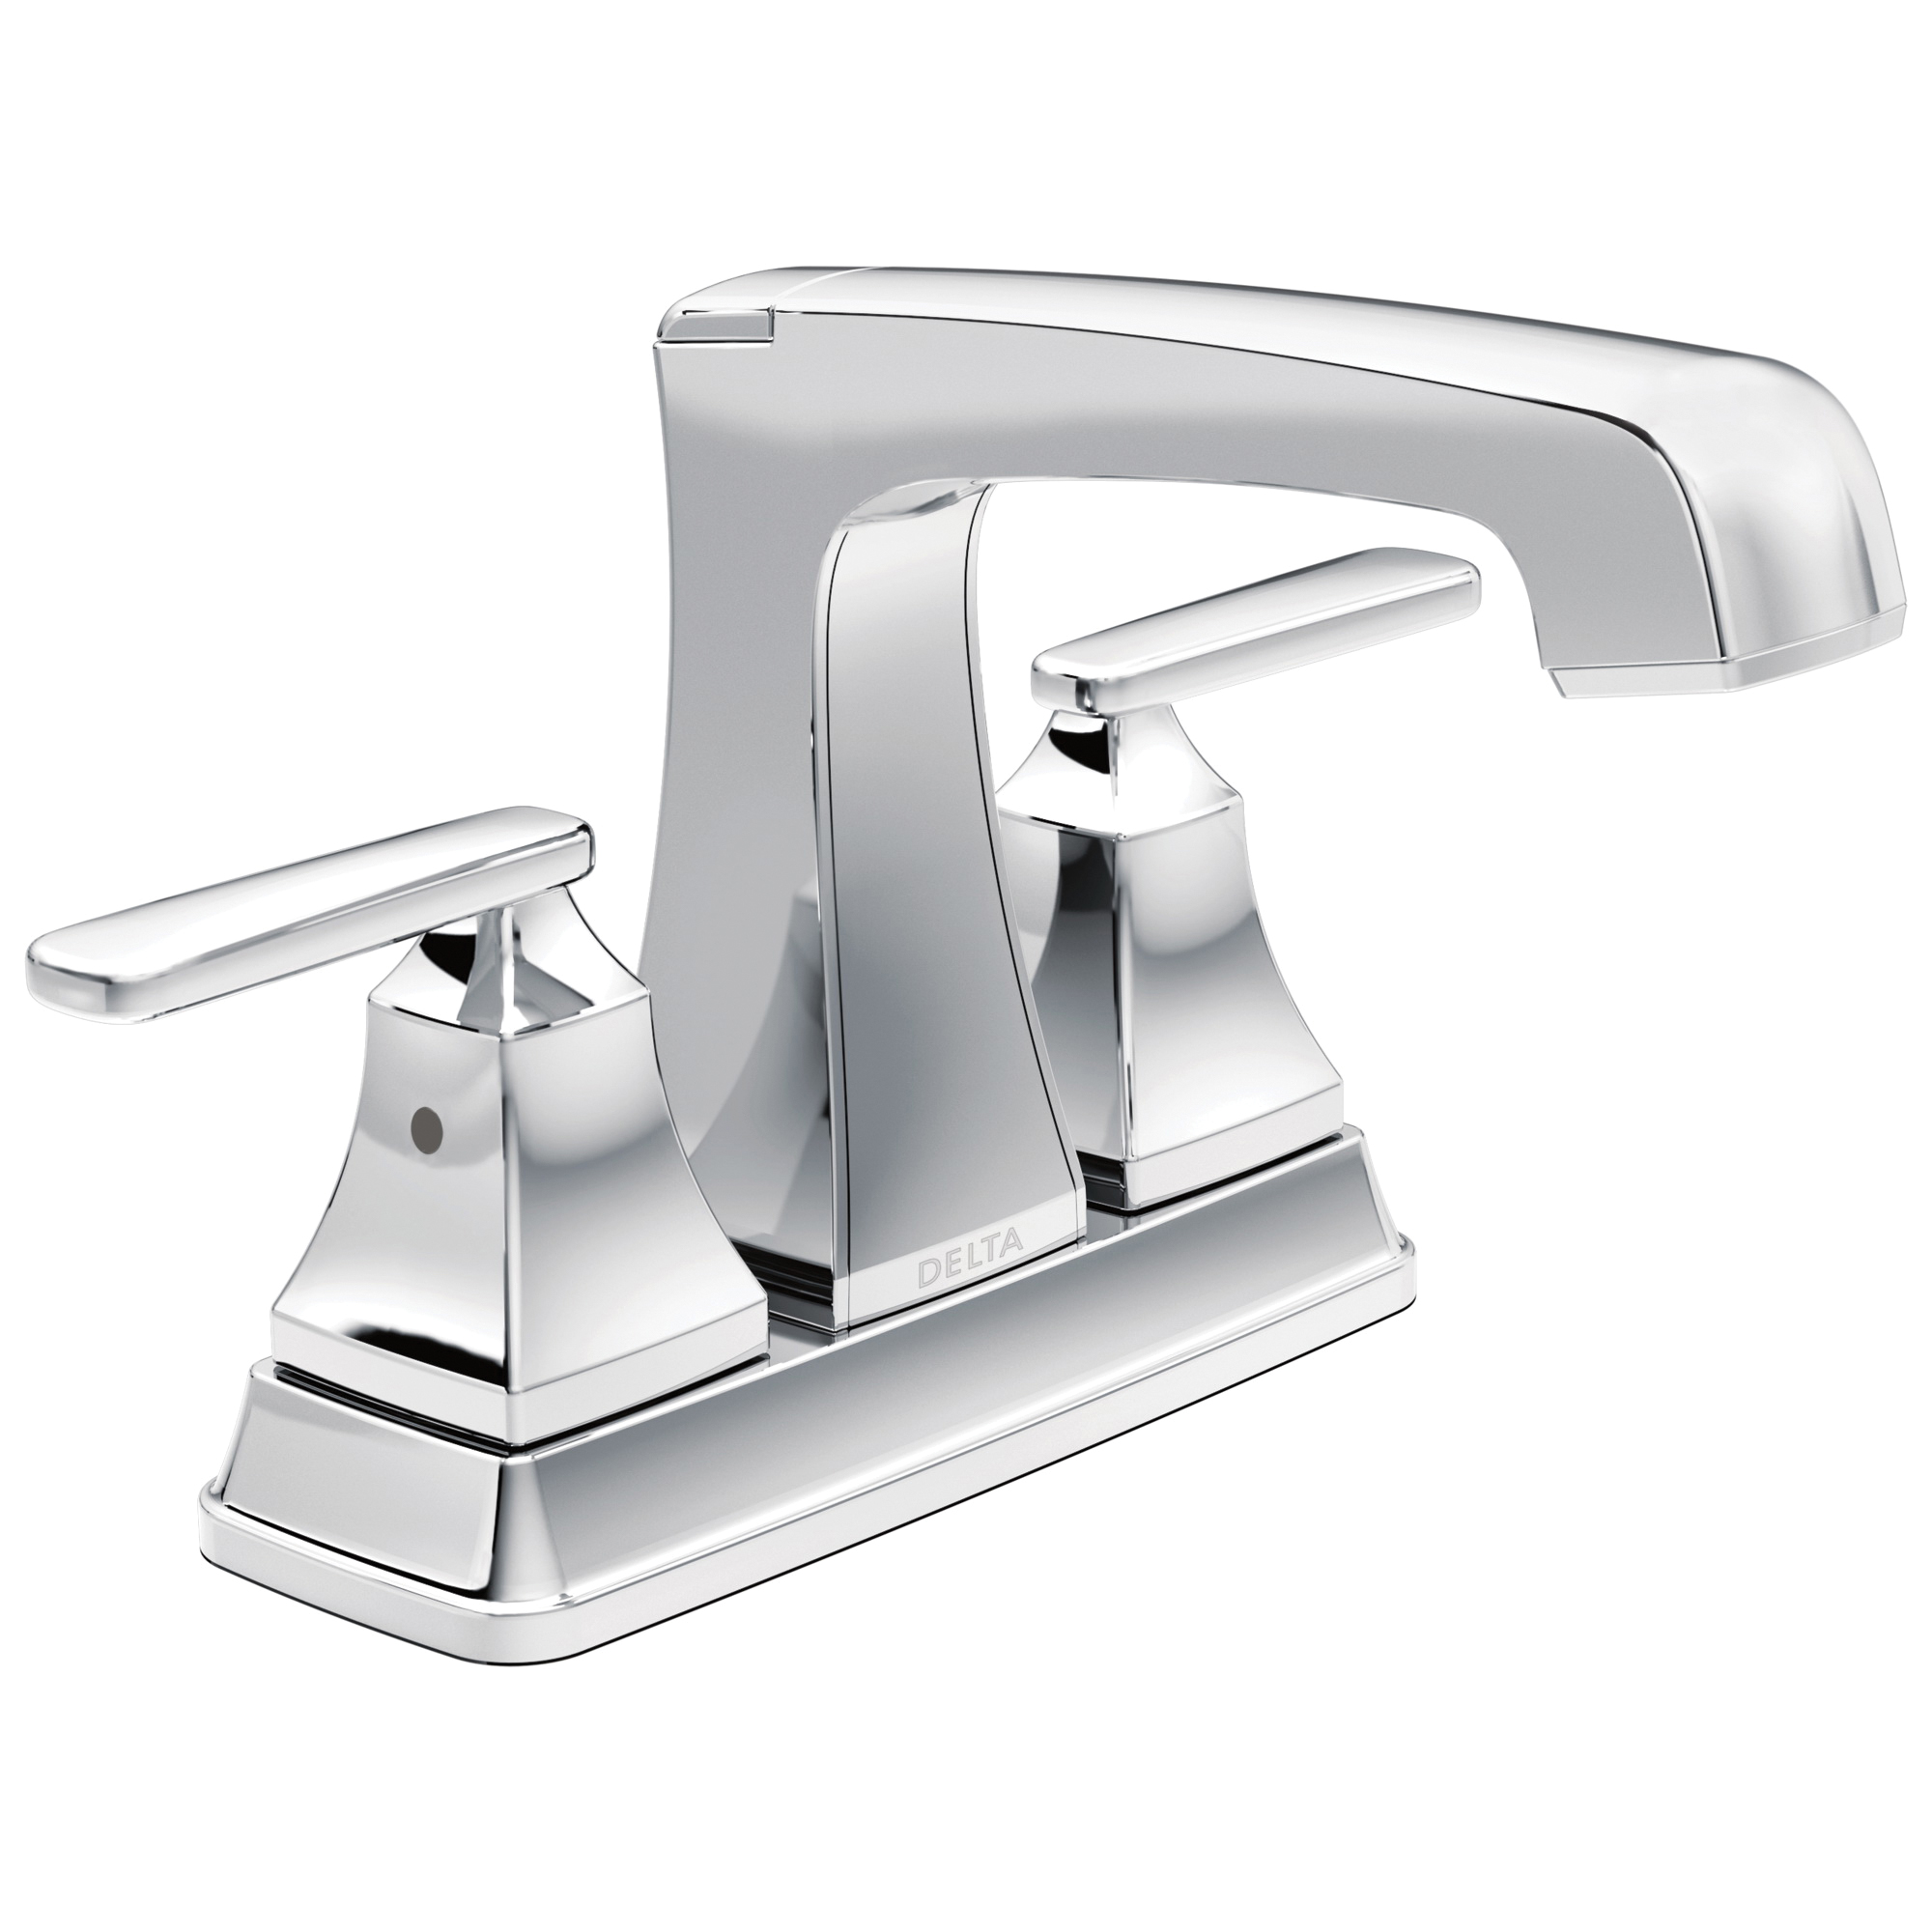 DELTA® 2564-TP-DST Tract-Pack™ Ashlyn® Centerset Lavatory Faucet, Polished Chrome, 2 Handles, 50/50 Pop-Up Drain, 1.2 gpm Flow Rate